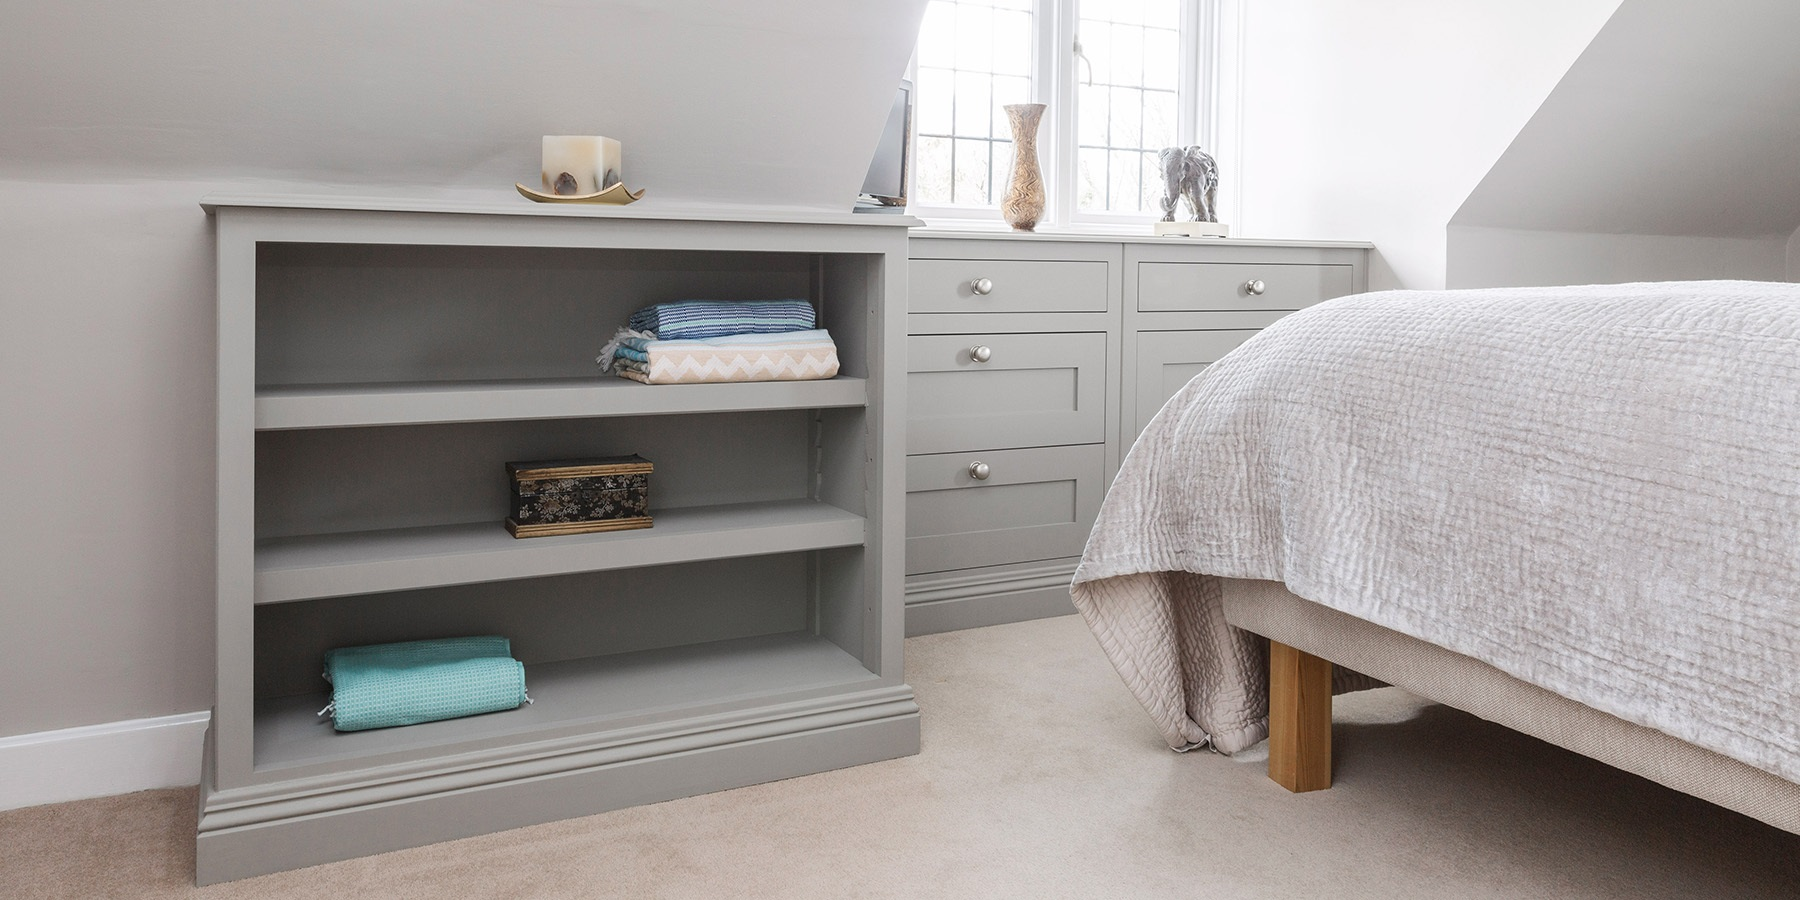 Burlanes design and create bespoke, handmade furniture and interiors of the highest quality. - We offer a totally bespoke service, ranging from freestanding kitchens, country kitchens, bespoke bathroom design and home offices, to smart storage solutions and bedroom furniture.